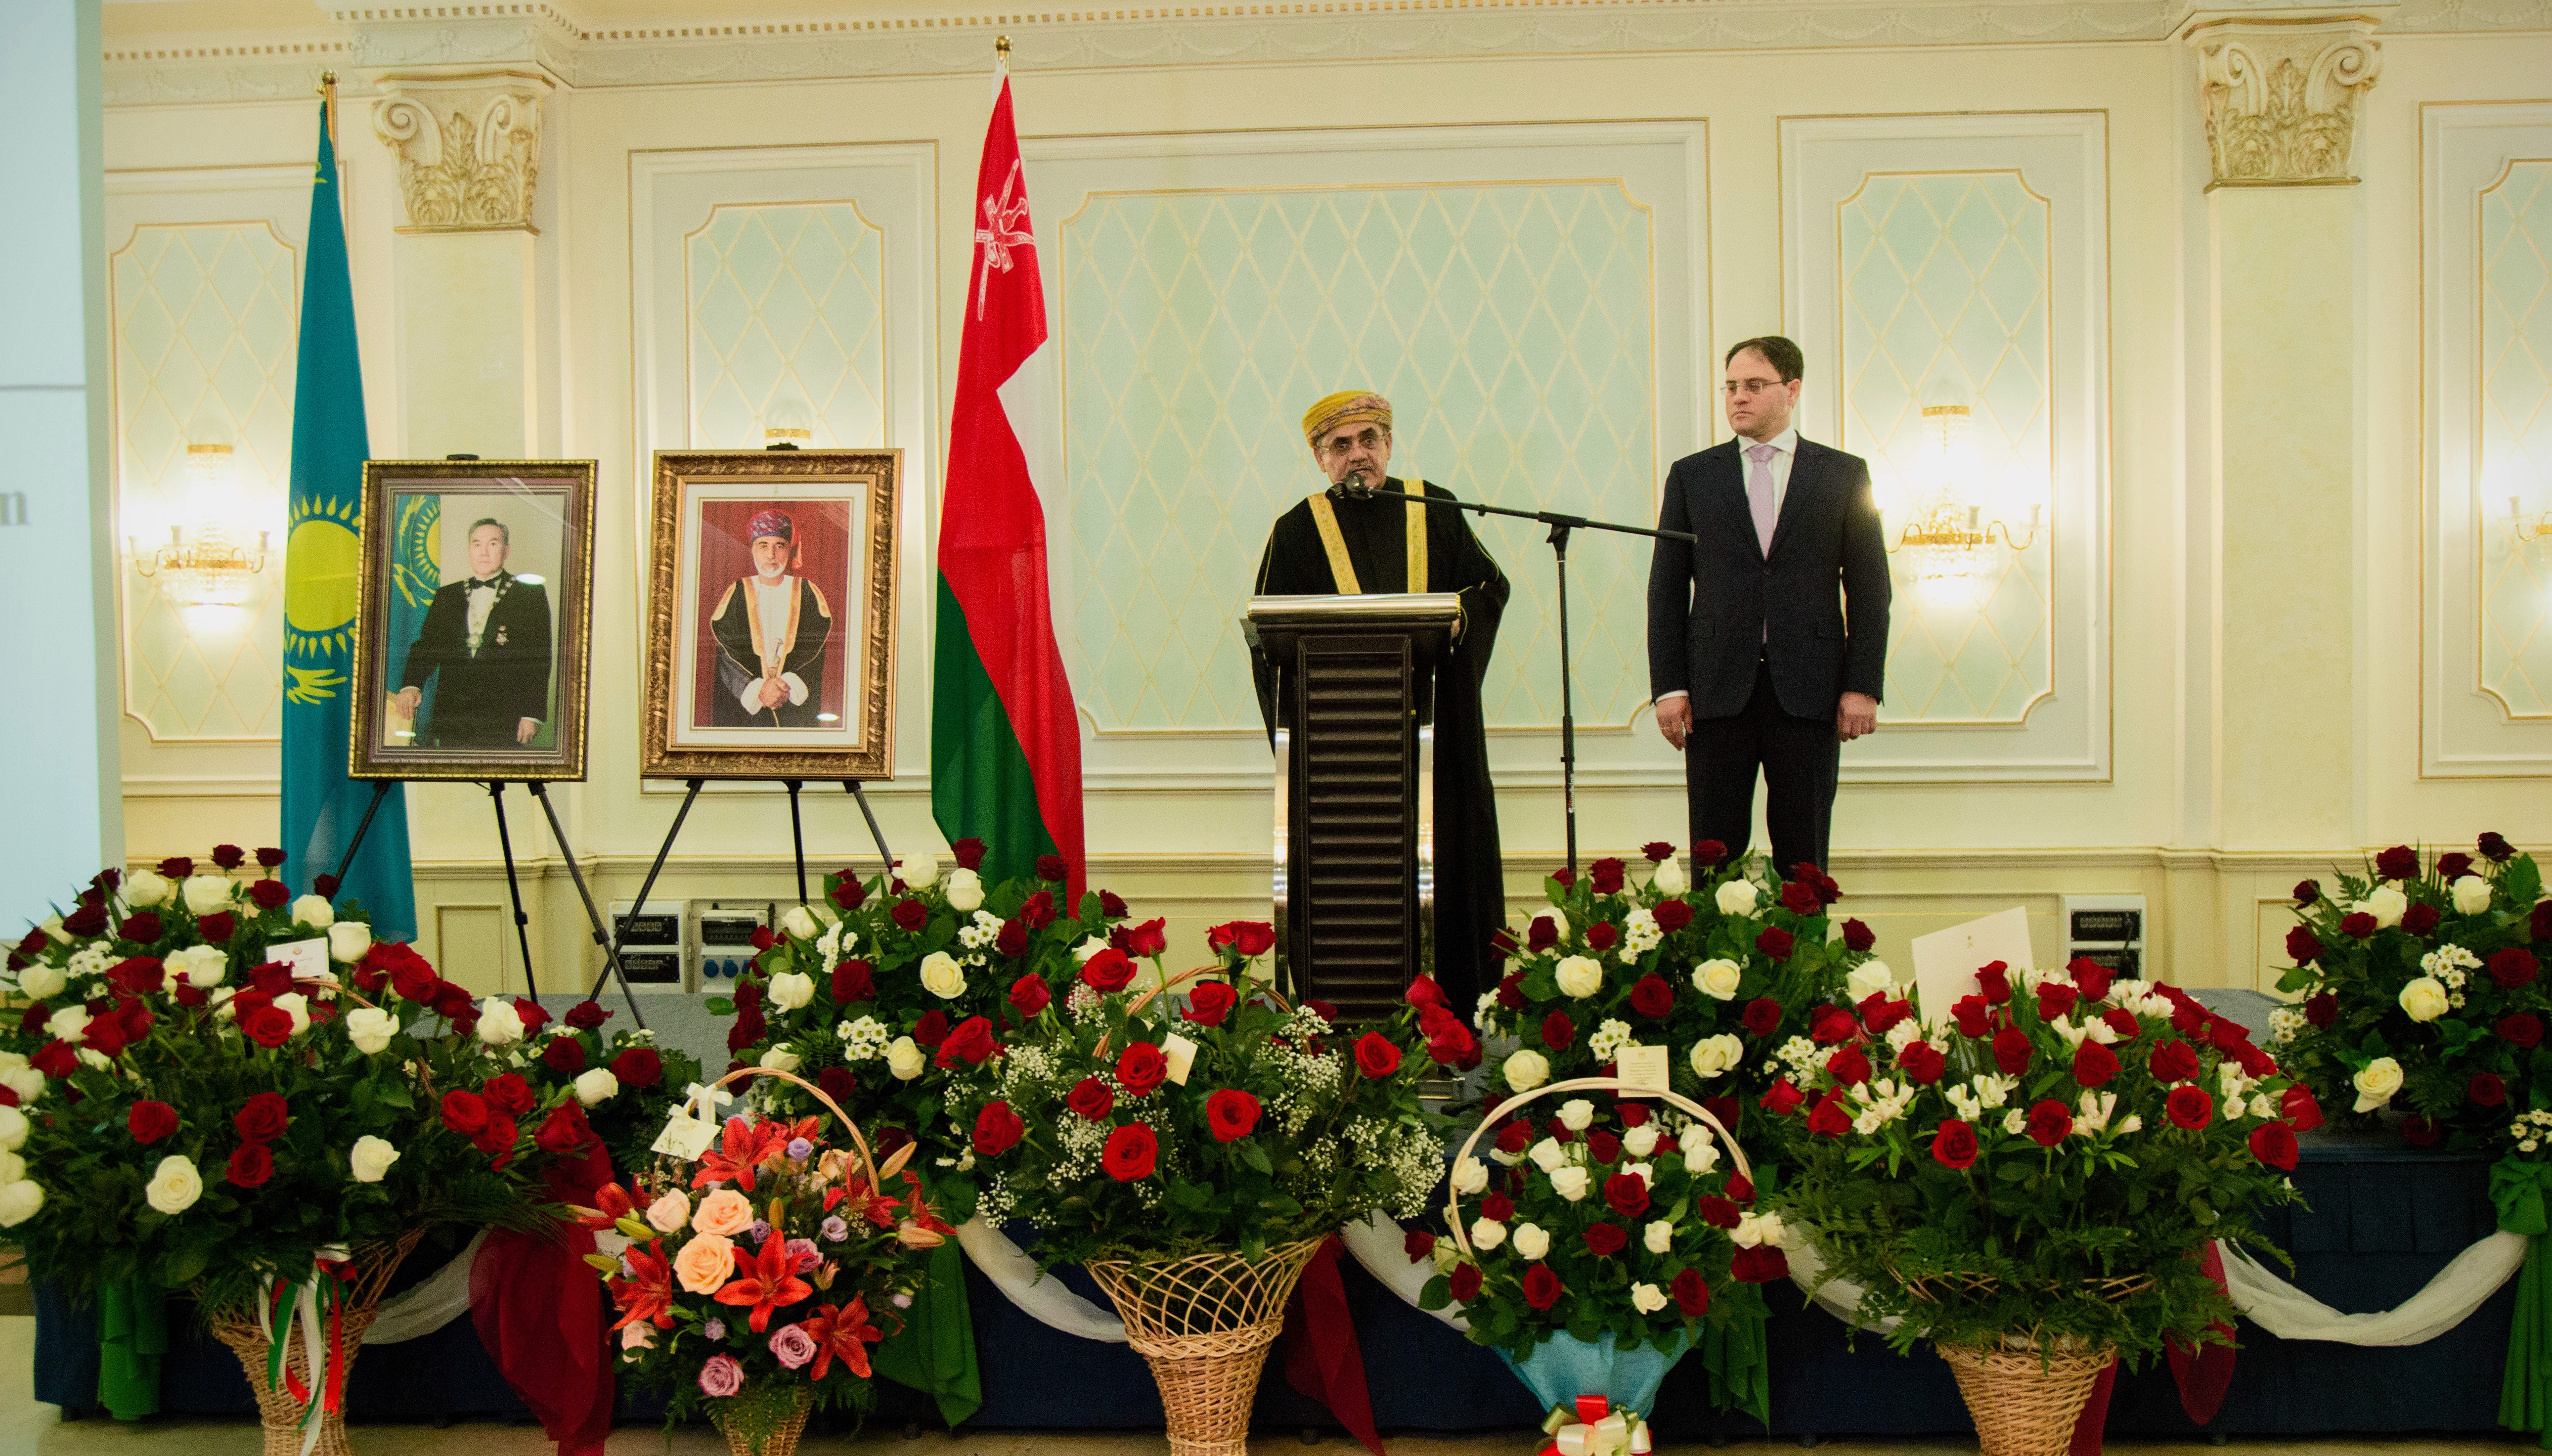 Growing bilateral relationship noted at celebration of Omani